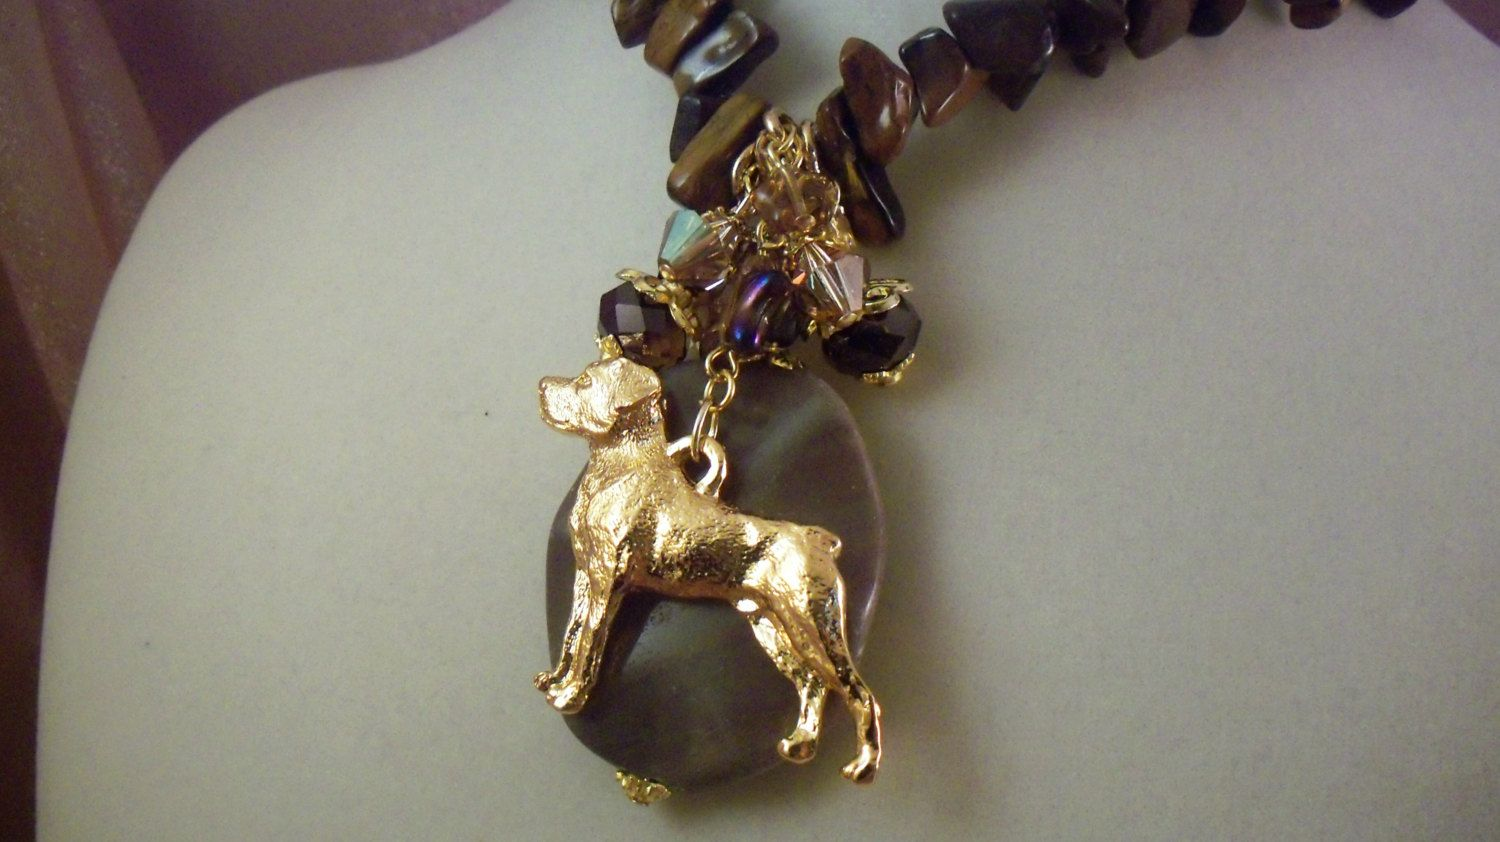 ROTTWIELER - Charm Necklace -o29 - Free Shipping - USA Art - Handmade by Artisan - Last One by HOBBYHORSELADY on Etsy